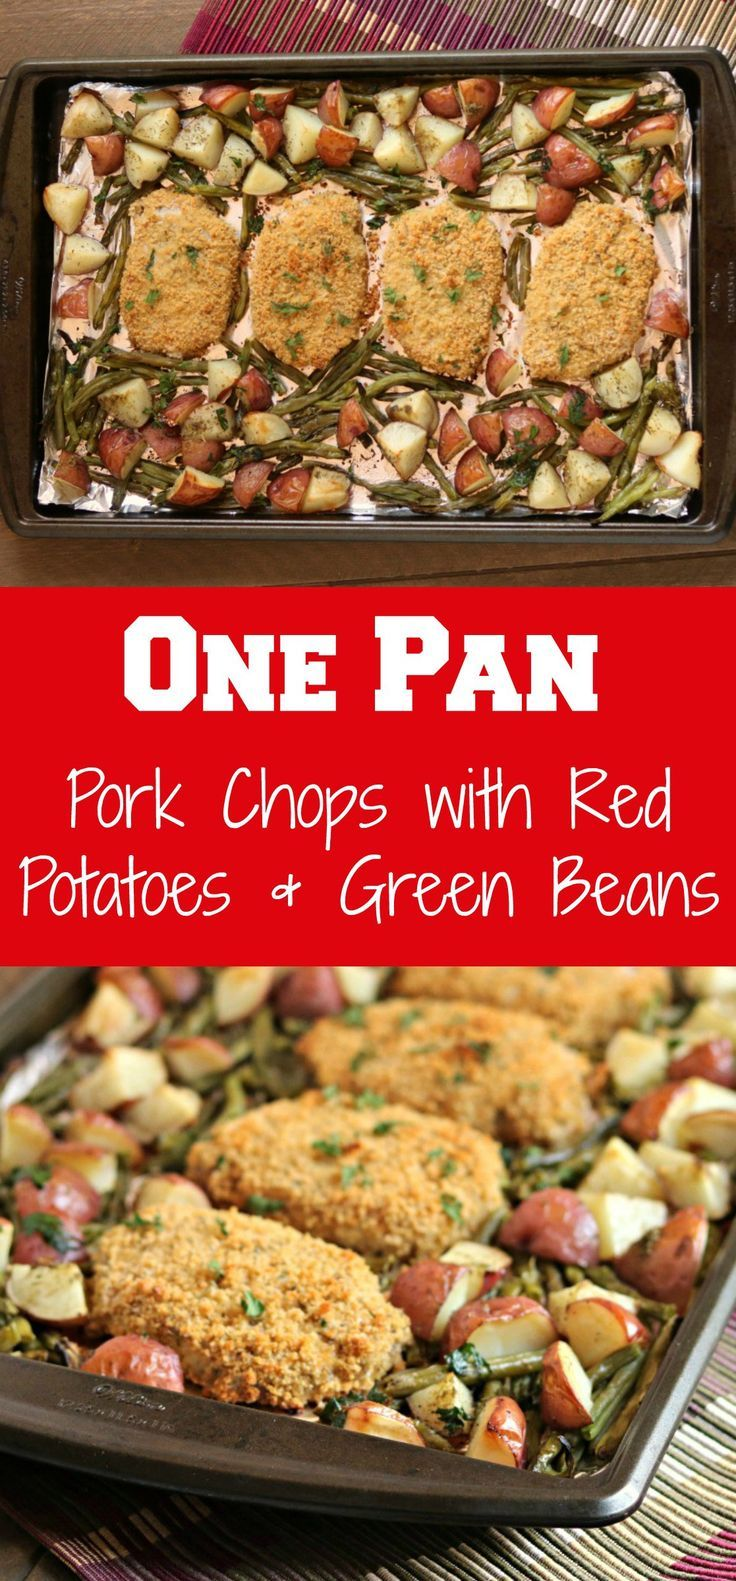 one pan pork chops with red potatoes & green beans #ad via http://www.chocolateslopes.com